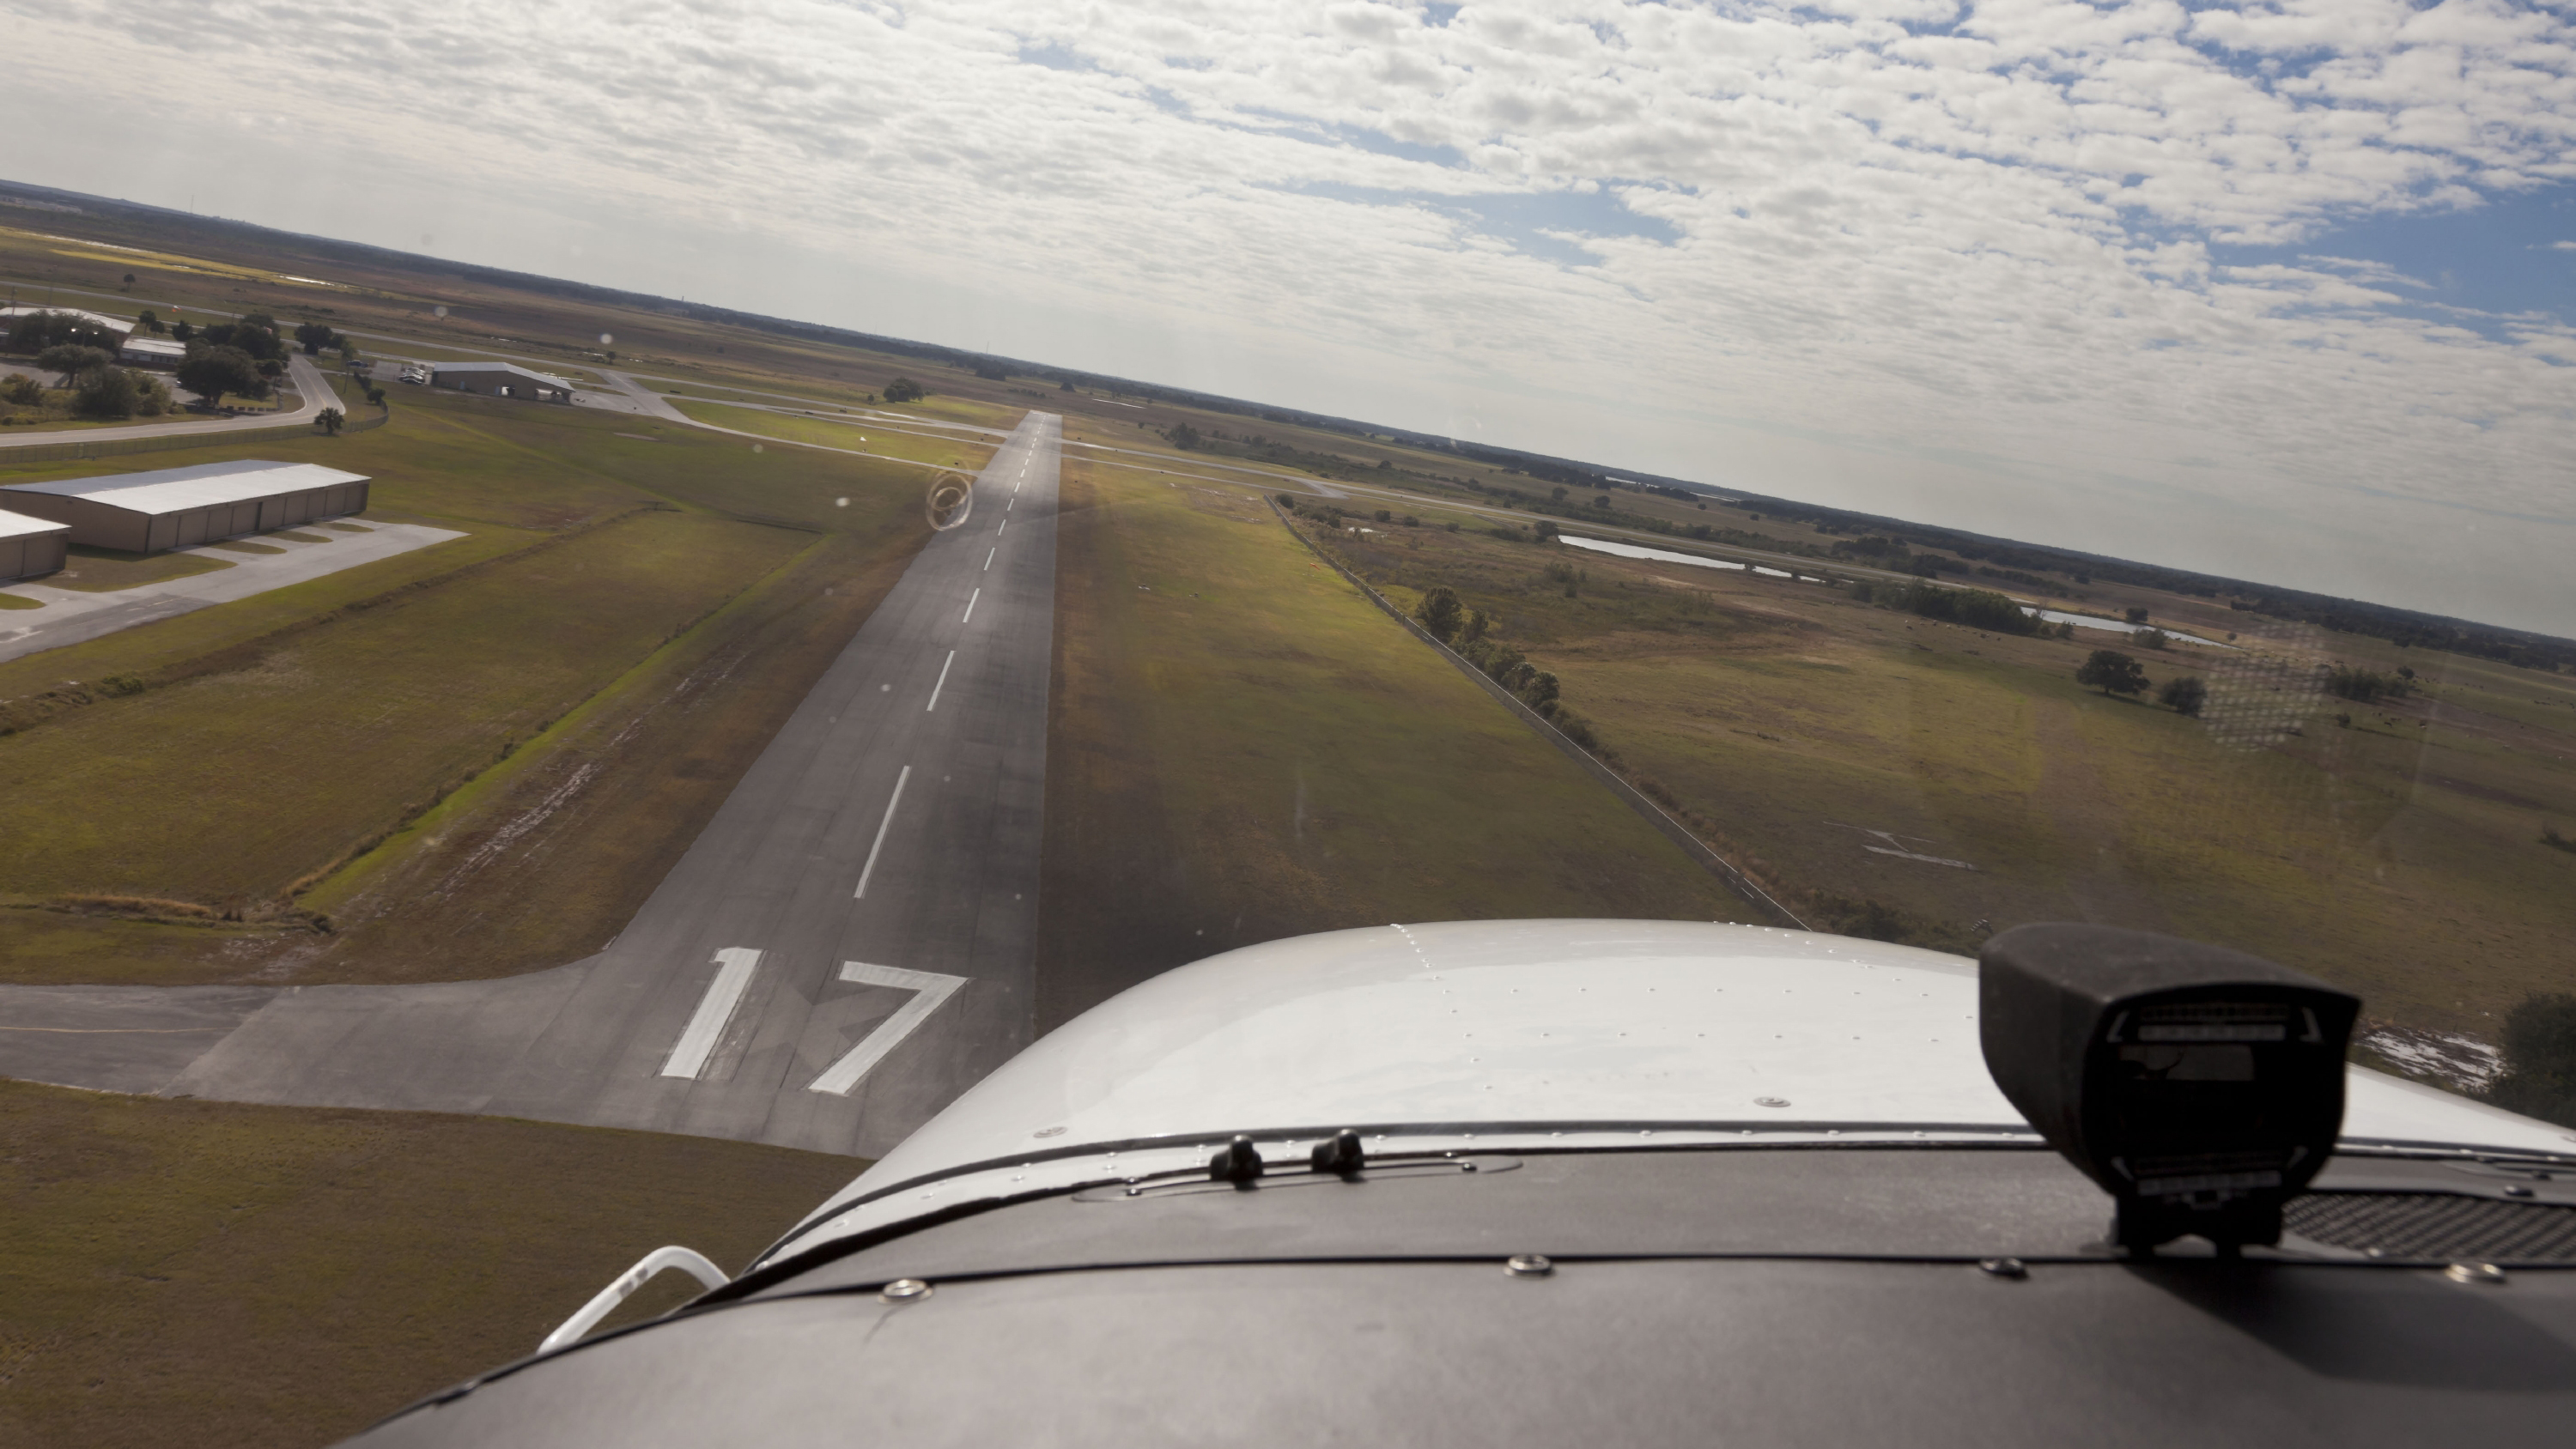 Suspect a tailwind on final approach? Go around!